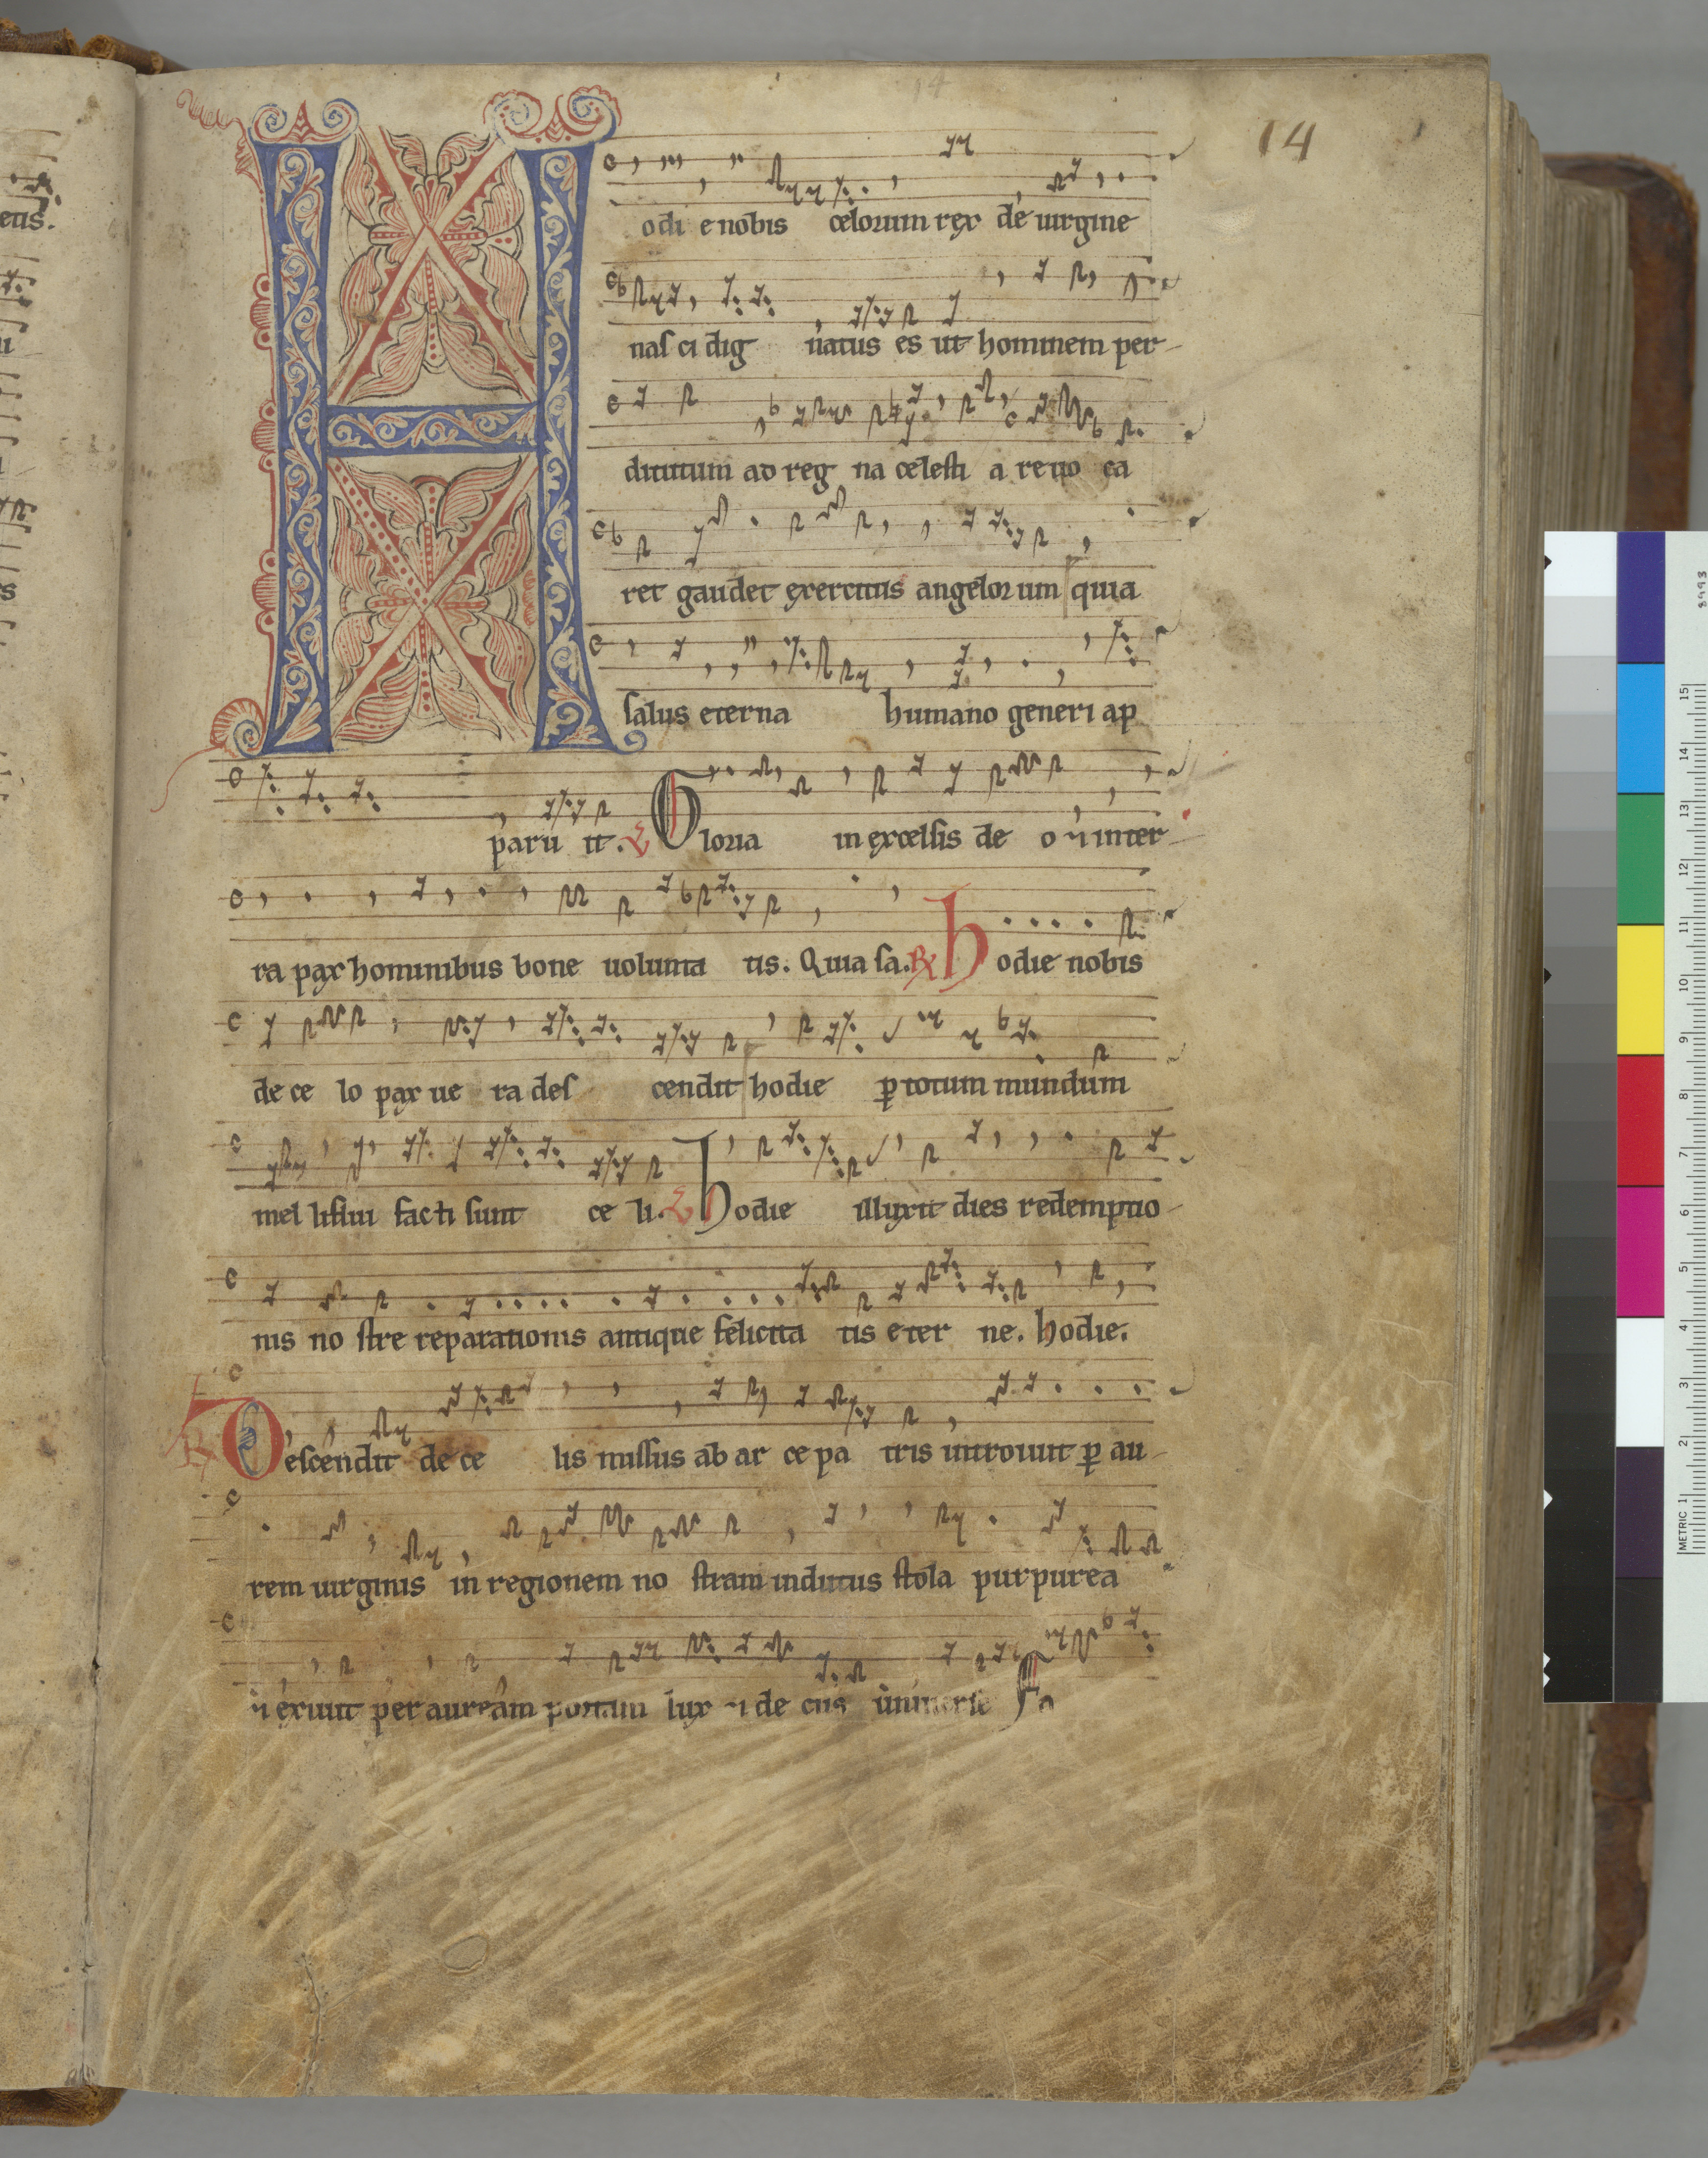 Berkeley, University of California, Music Library, Music Library MS 0753, f. 14r